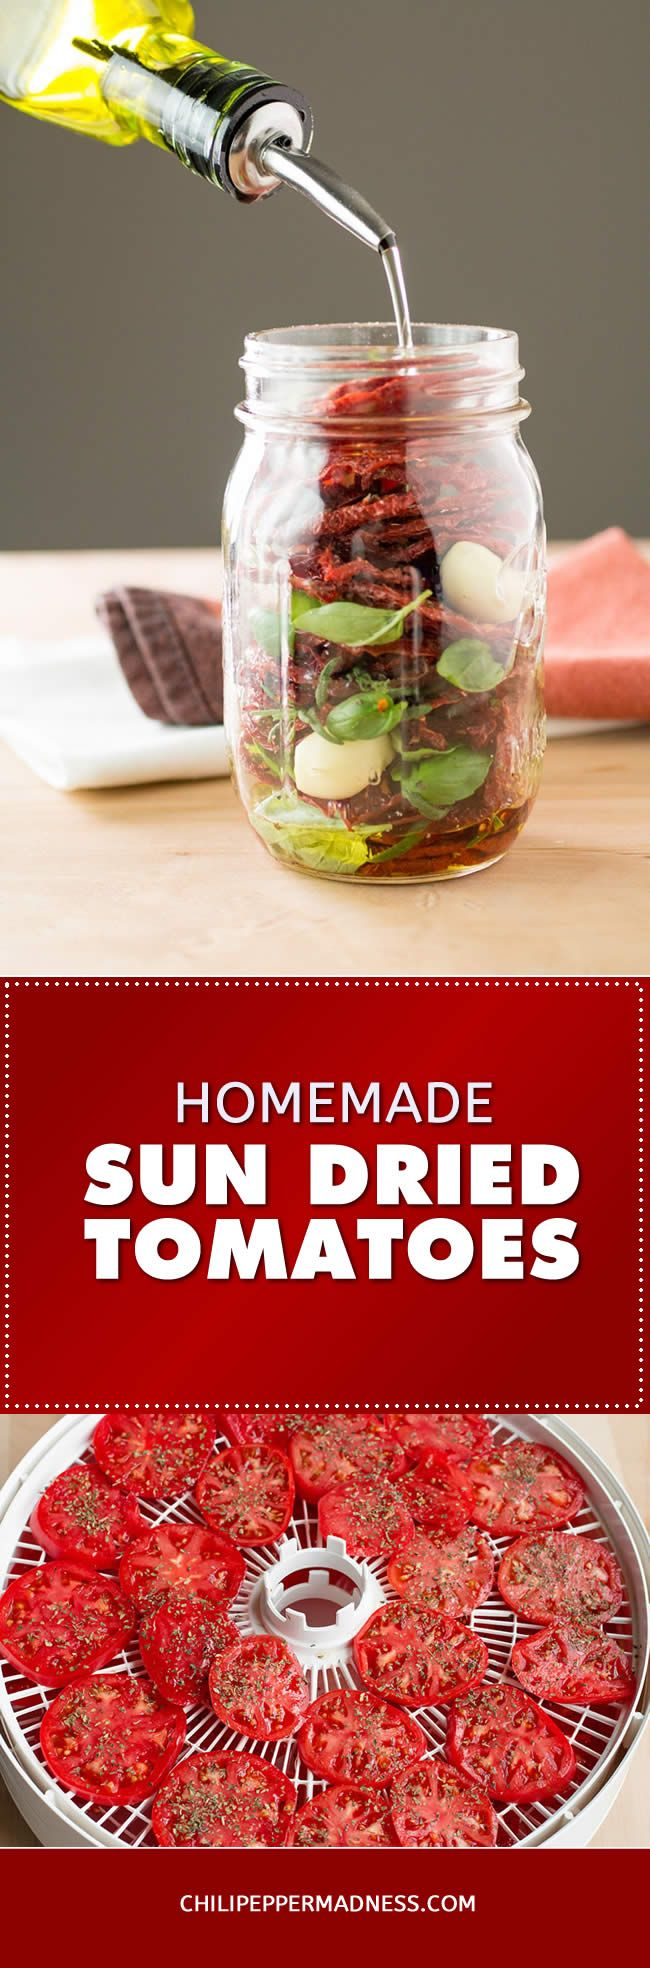 How to Make Sun Dried Tomatoes - with a Dehydrator - Recipe